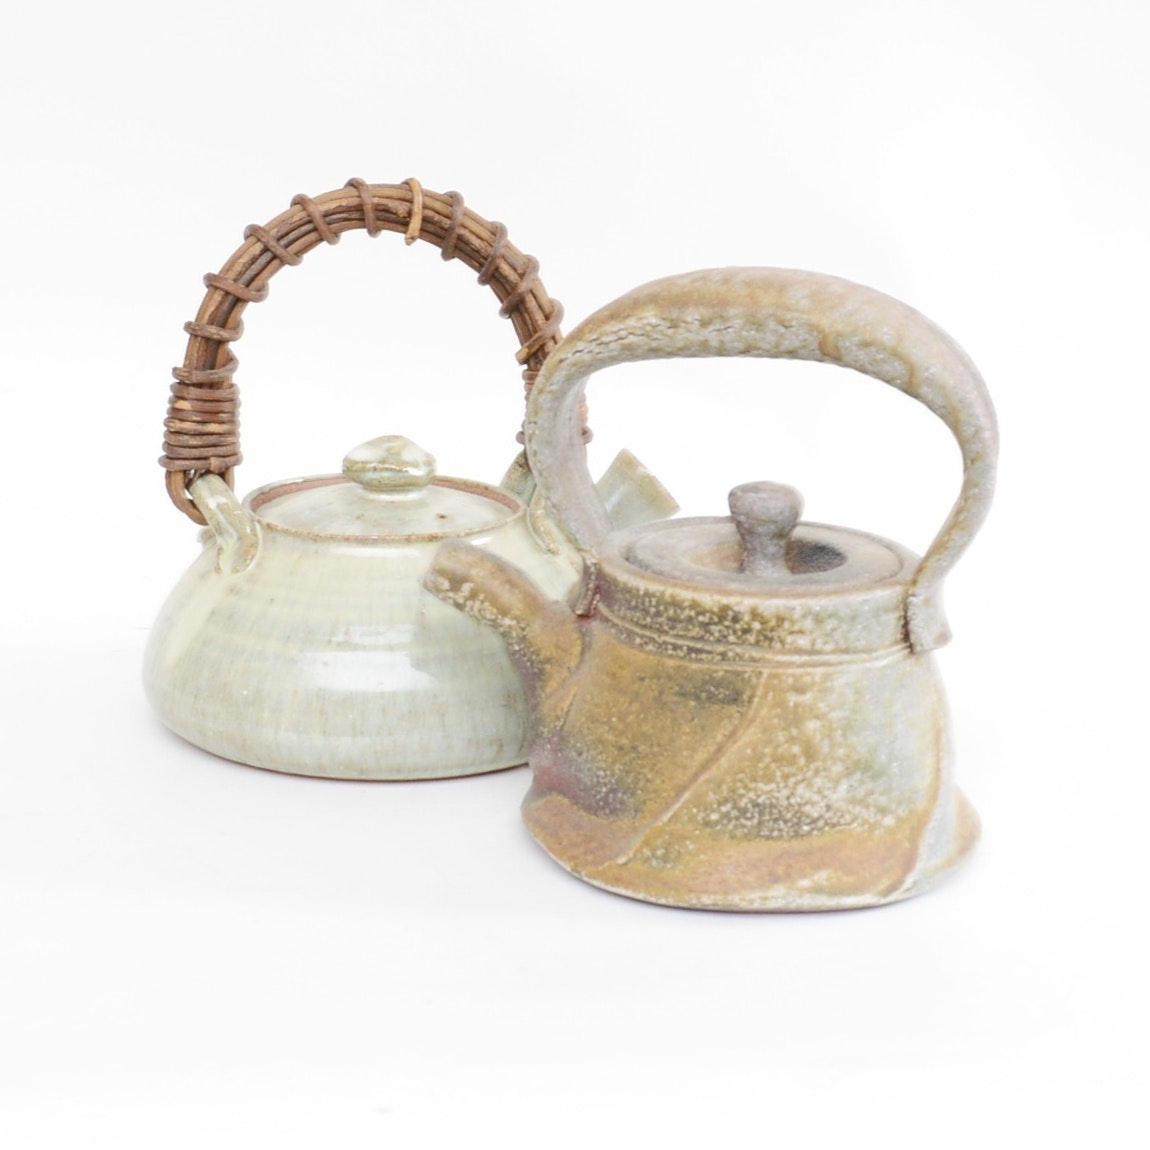 Two Japanese Hand-Crafted Pottery Teapots